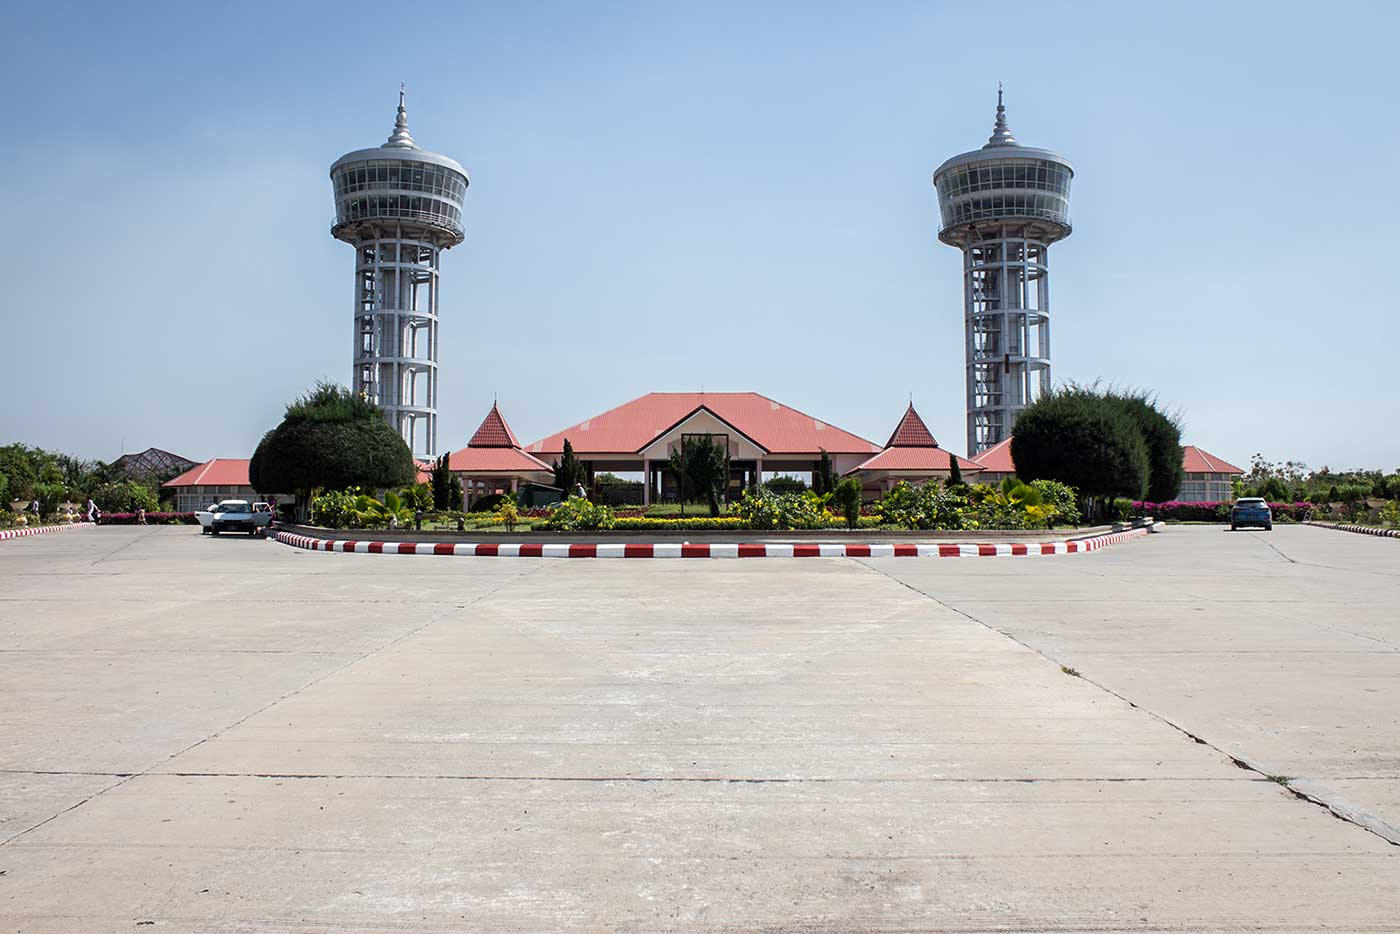 The entrance to the National Landmark Garden in Naypyidaw.